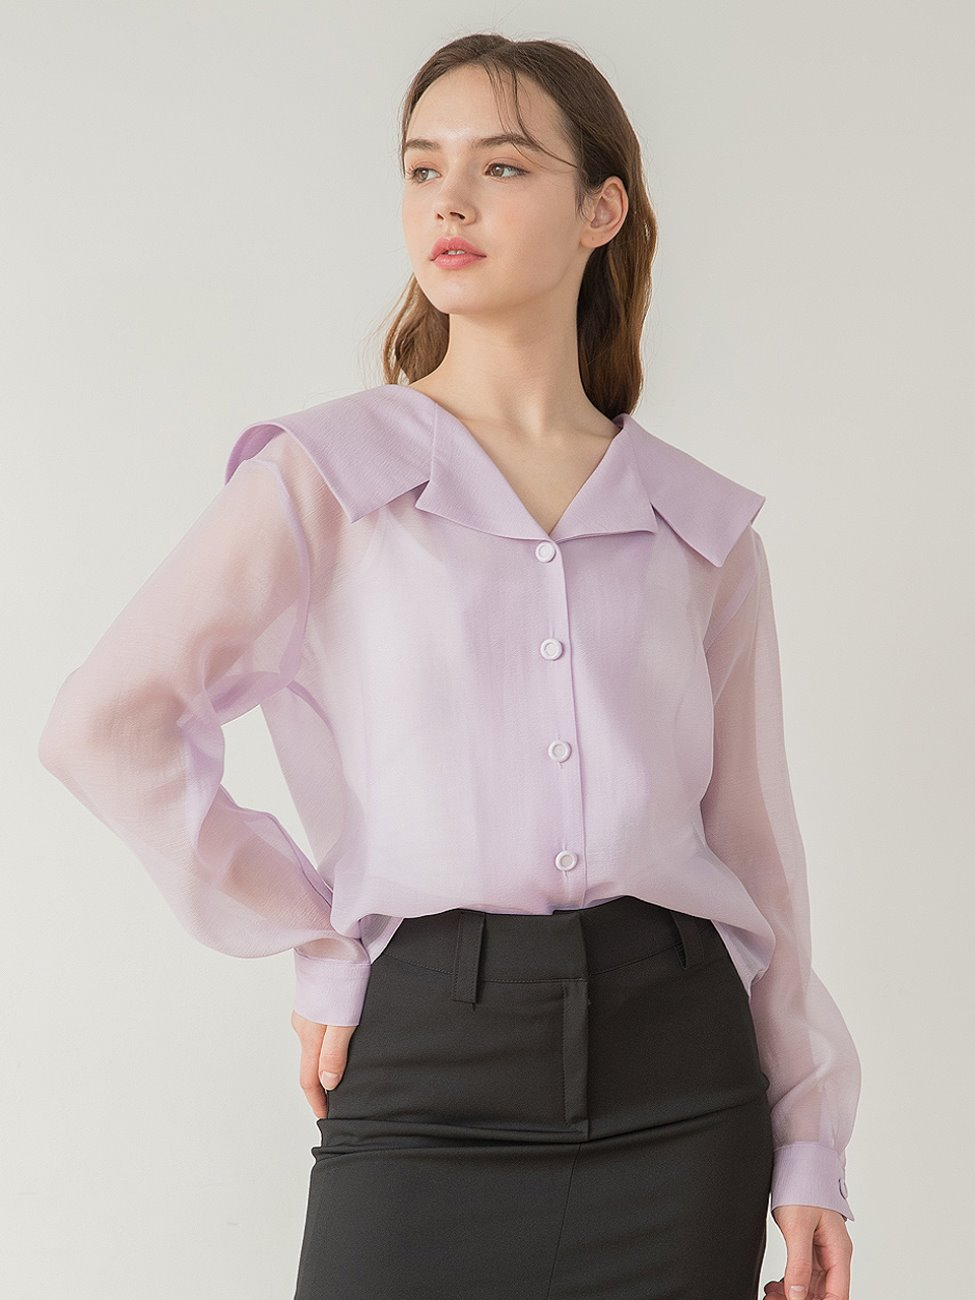 Sailor Collar Button Blouse Purple